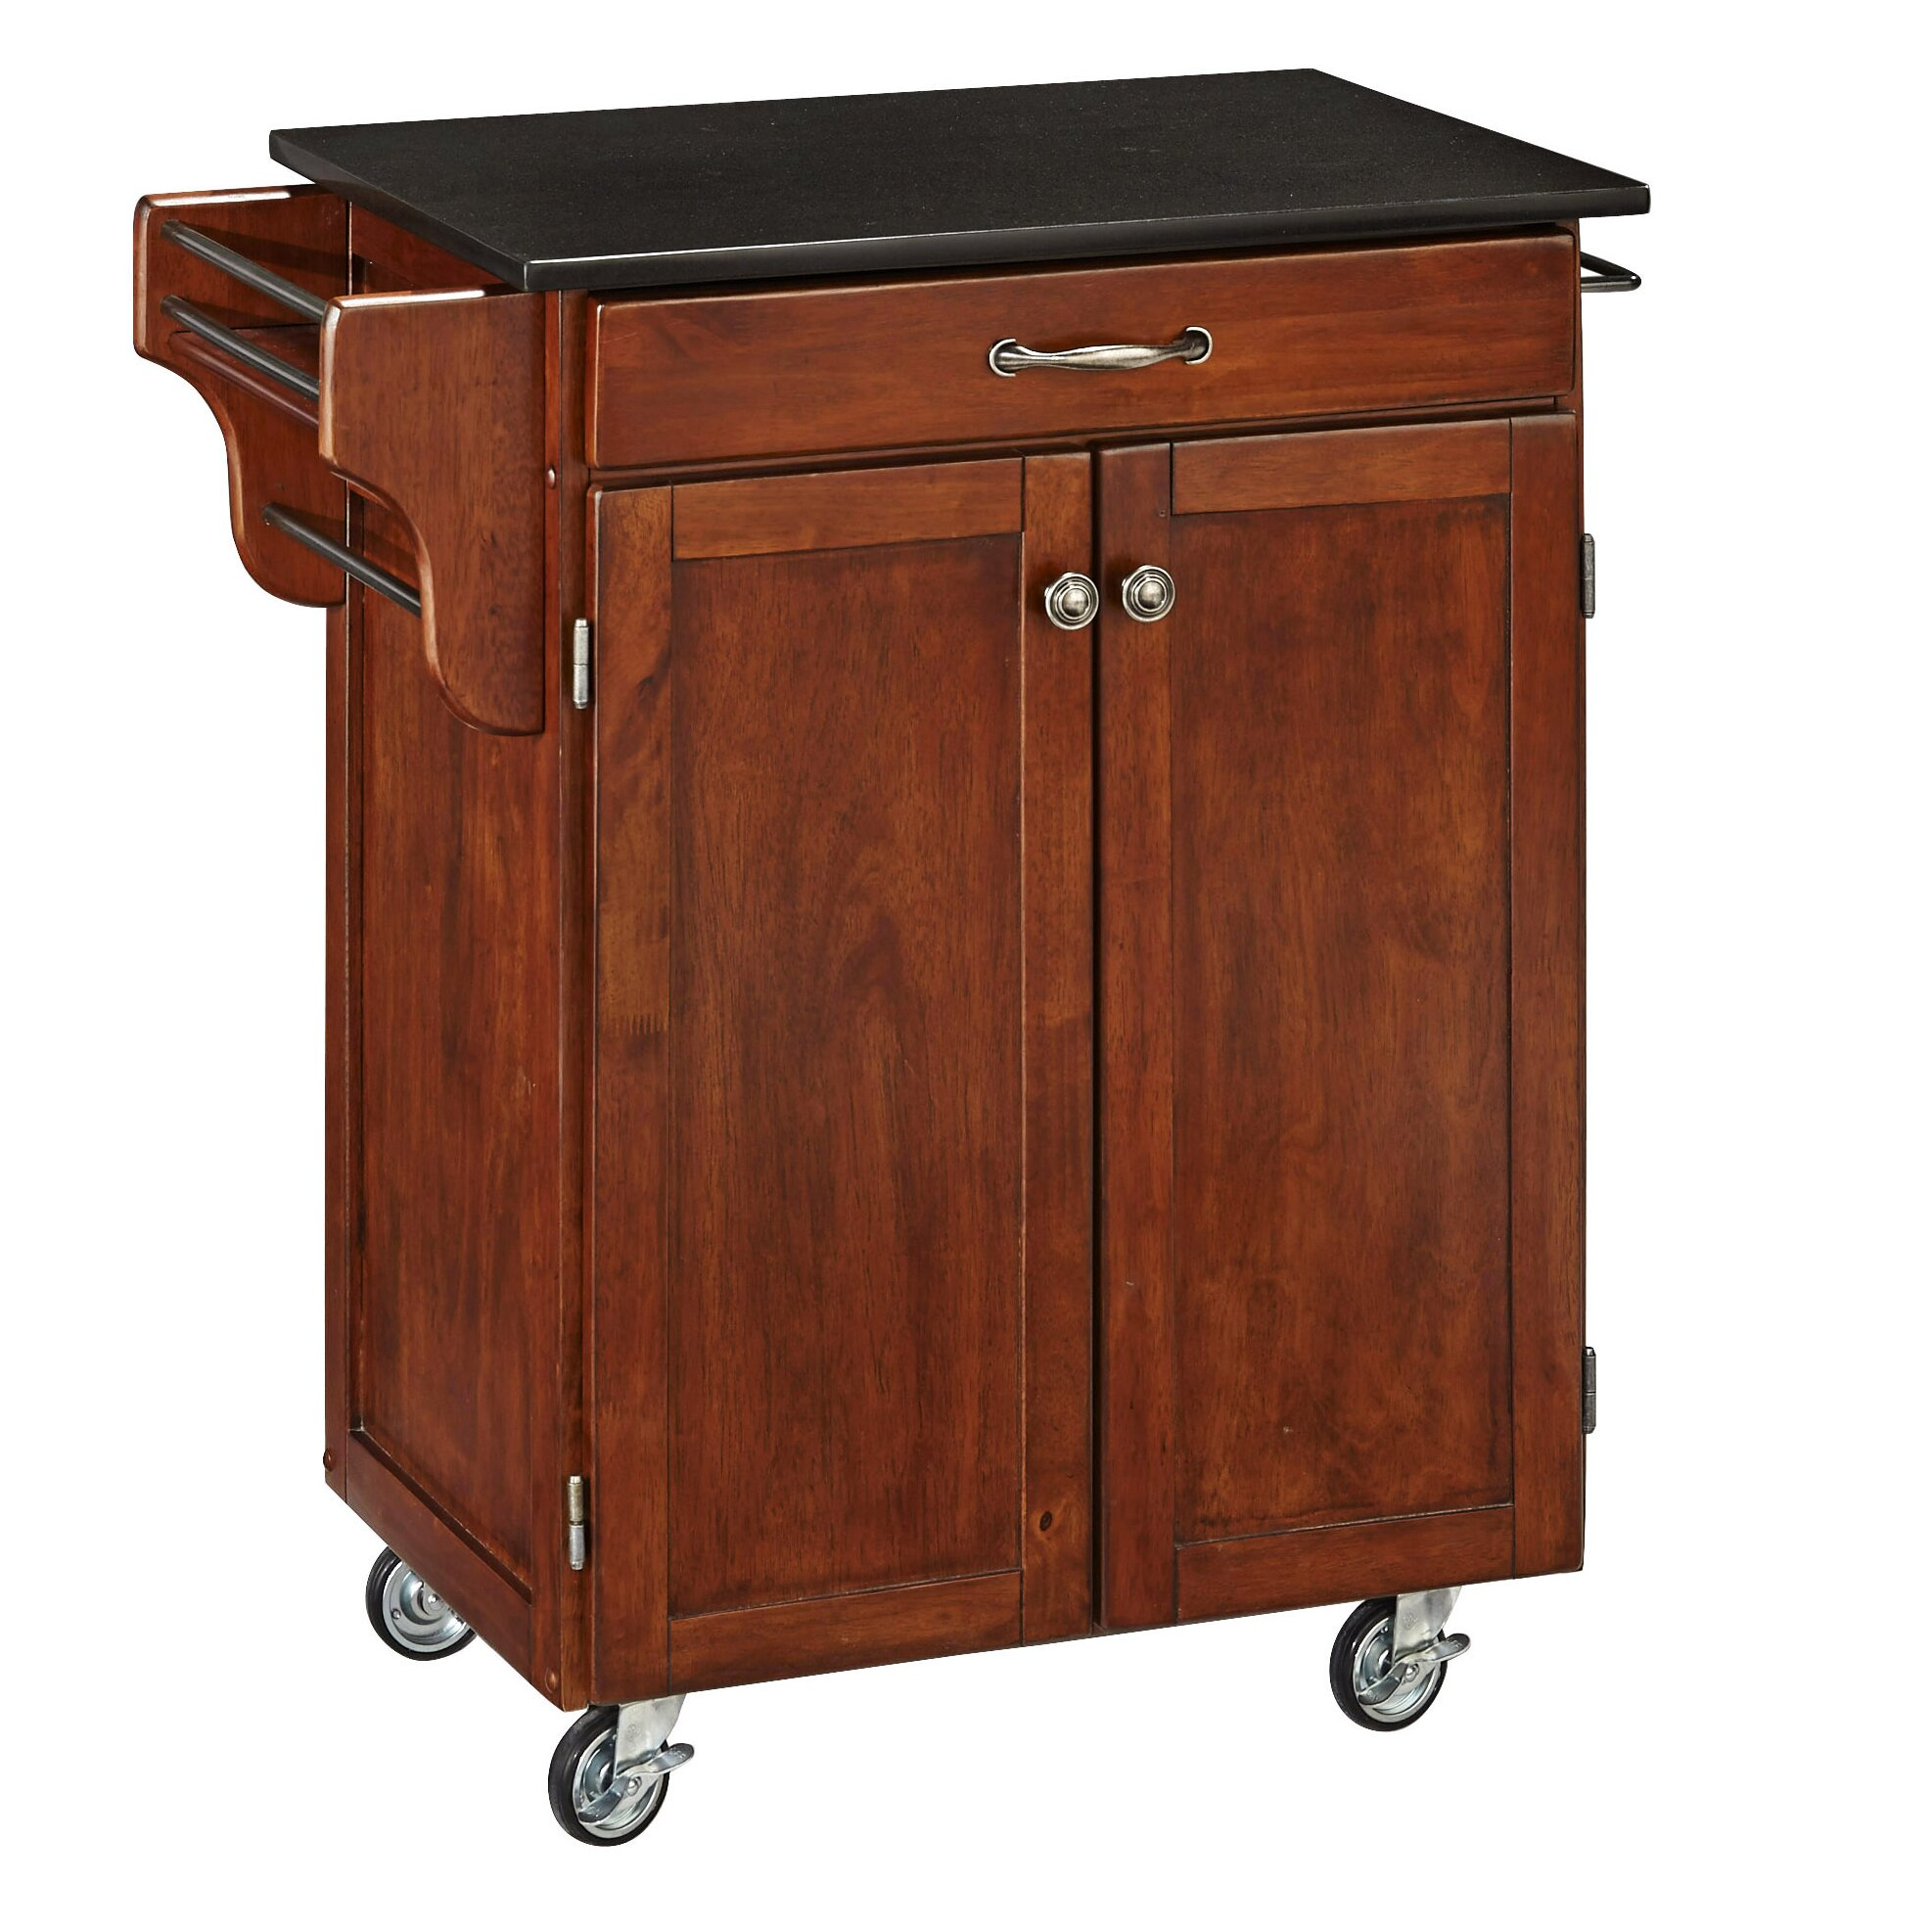 august grove savorey kitchen cart with granite top reviews. Black Bedroom Furniture Sets. Home Design Ideas